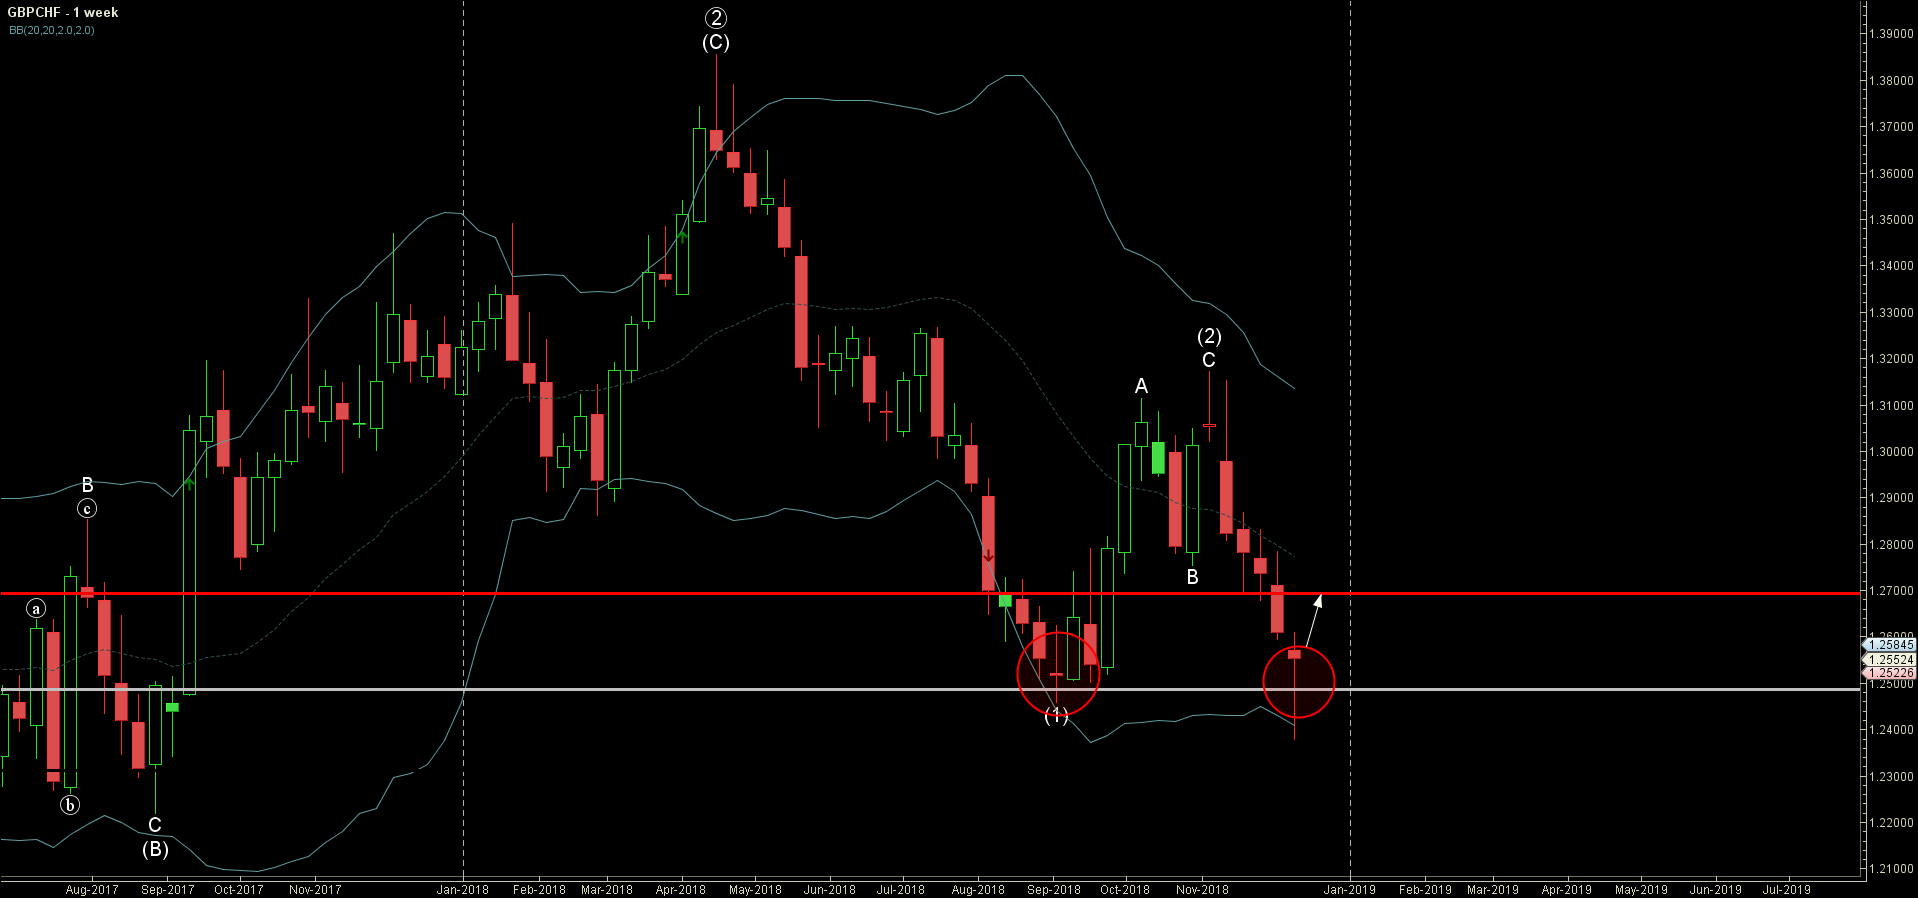 GBPCHF reversed from support area